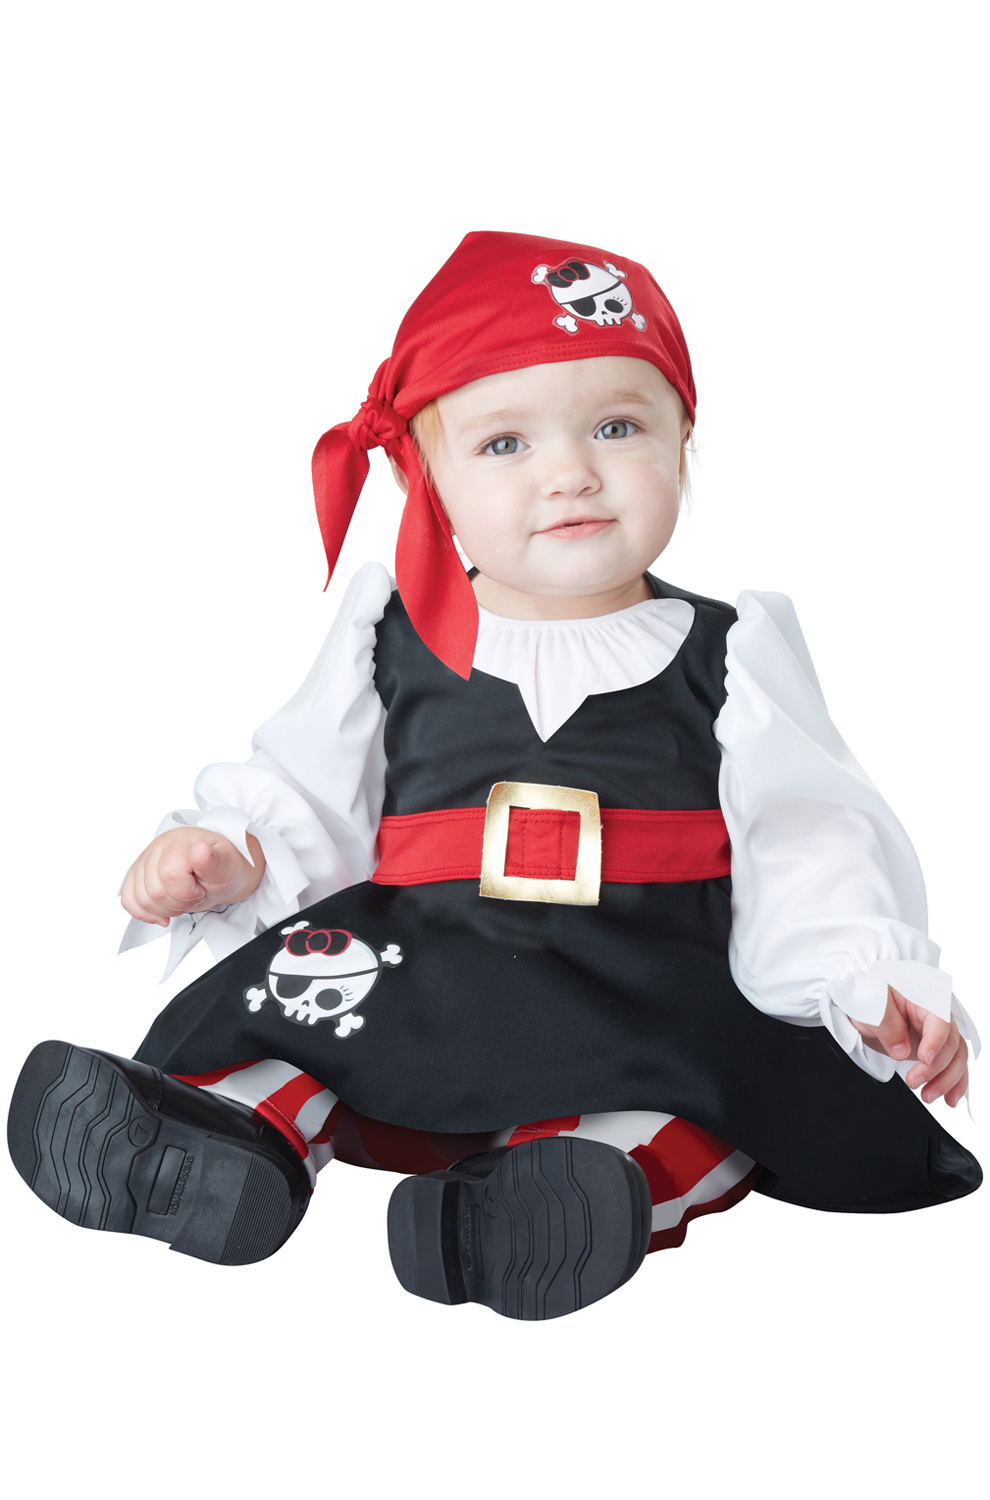 Petite Pirate Infant Costume by California Costumes